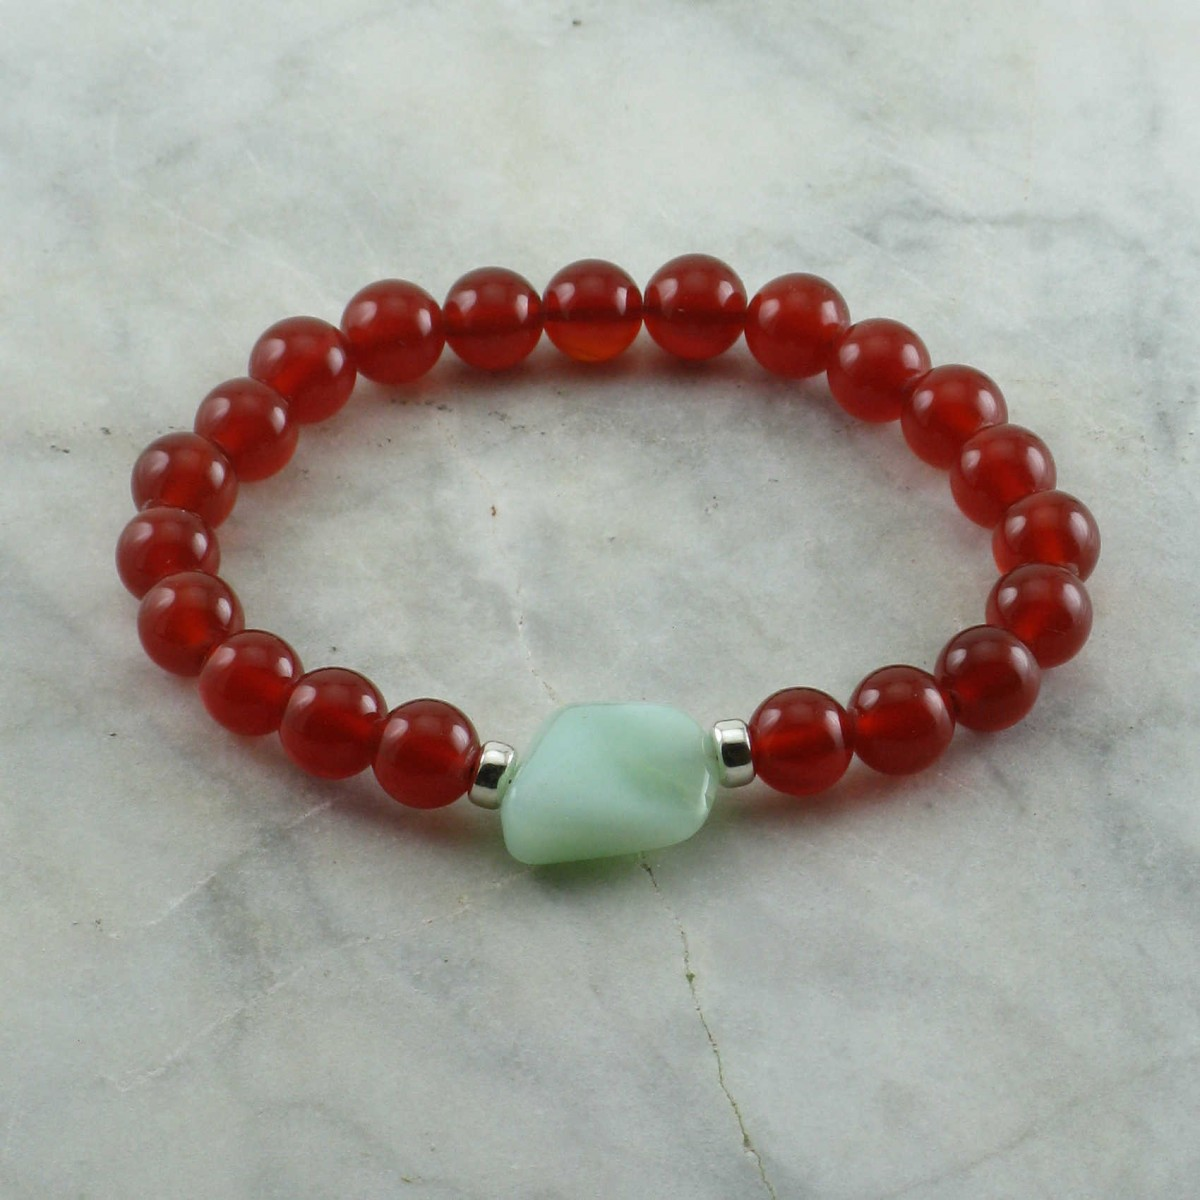 Healing_Mala_Bracelet_21_Carnelian_Mala_Beads_Buddhist_Bracelet